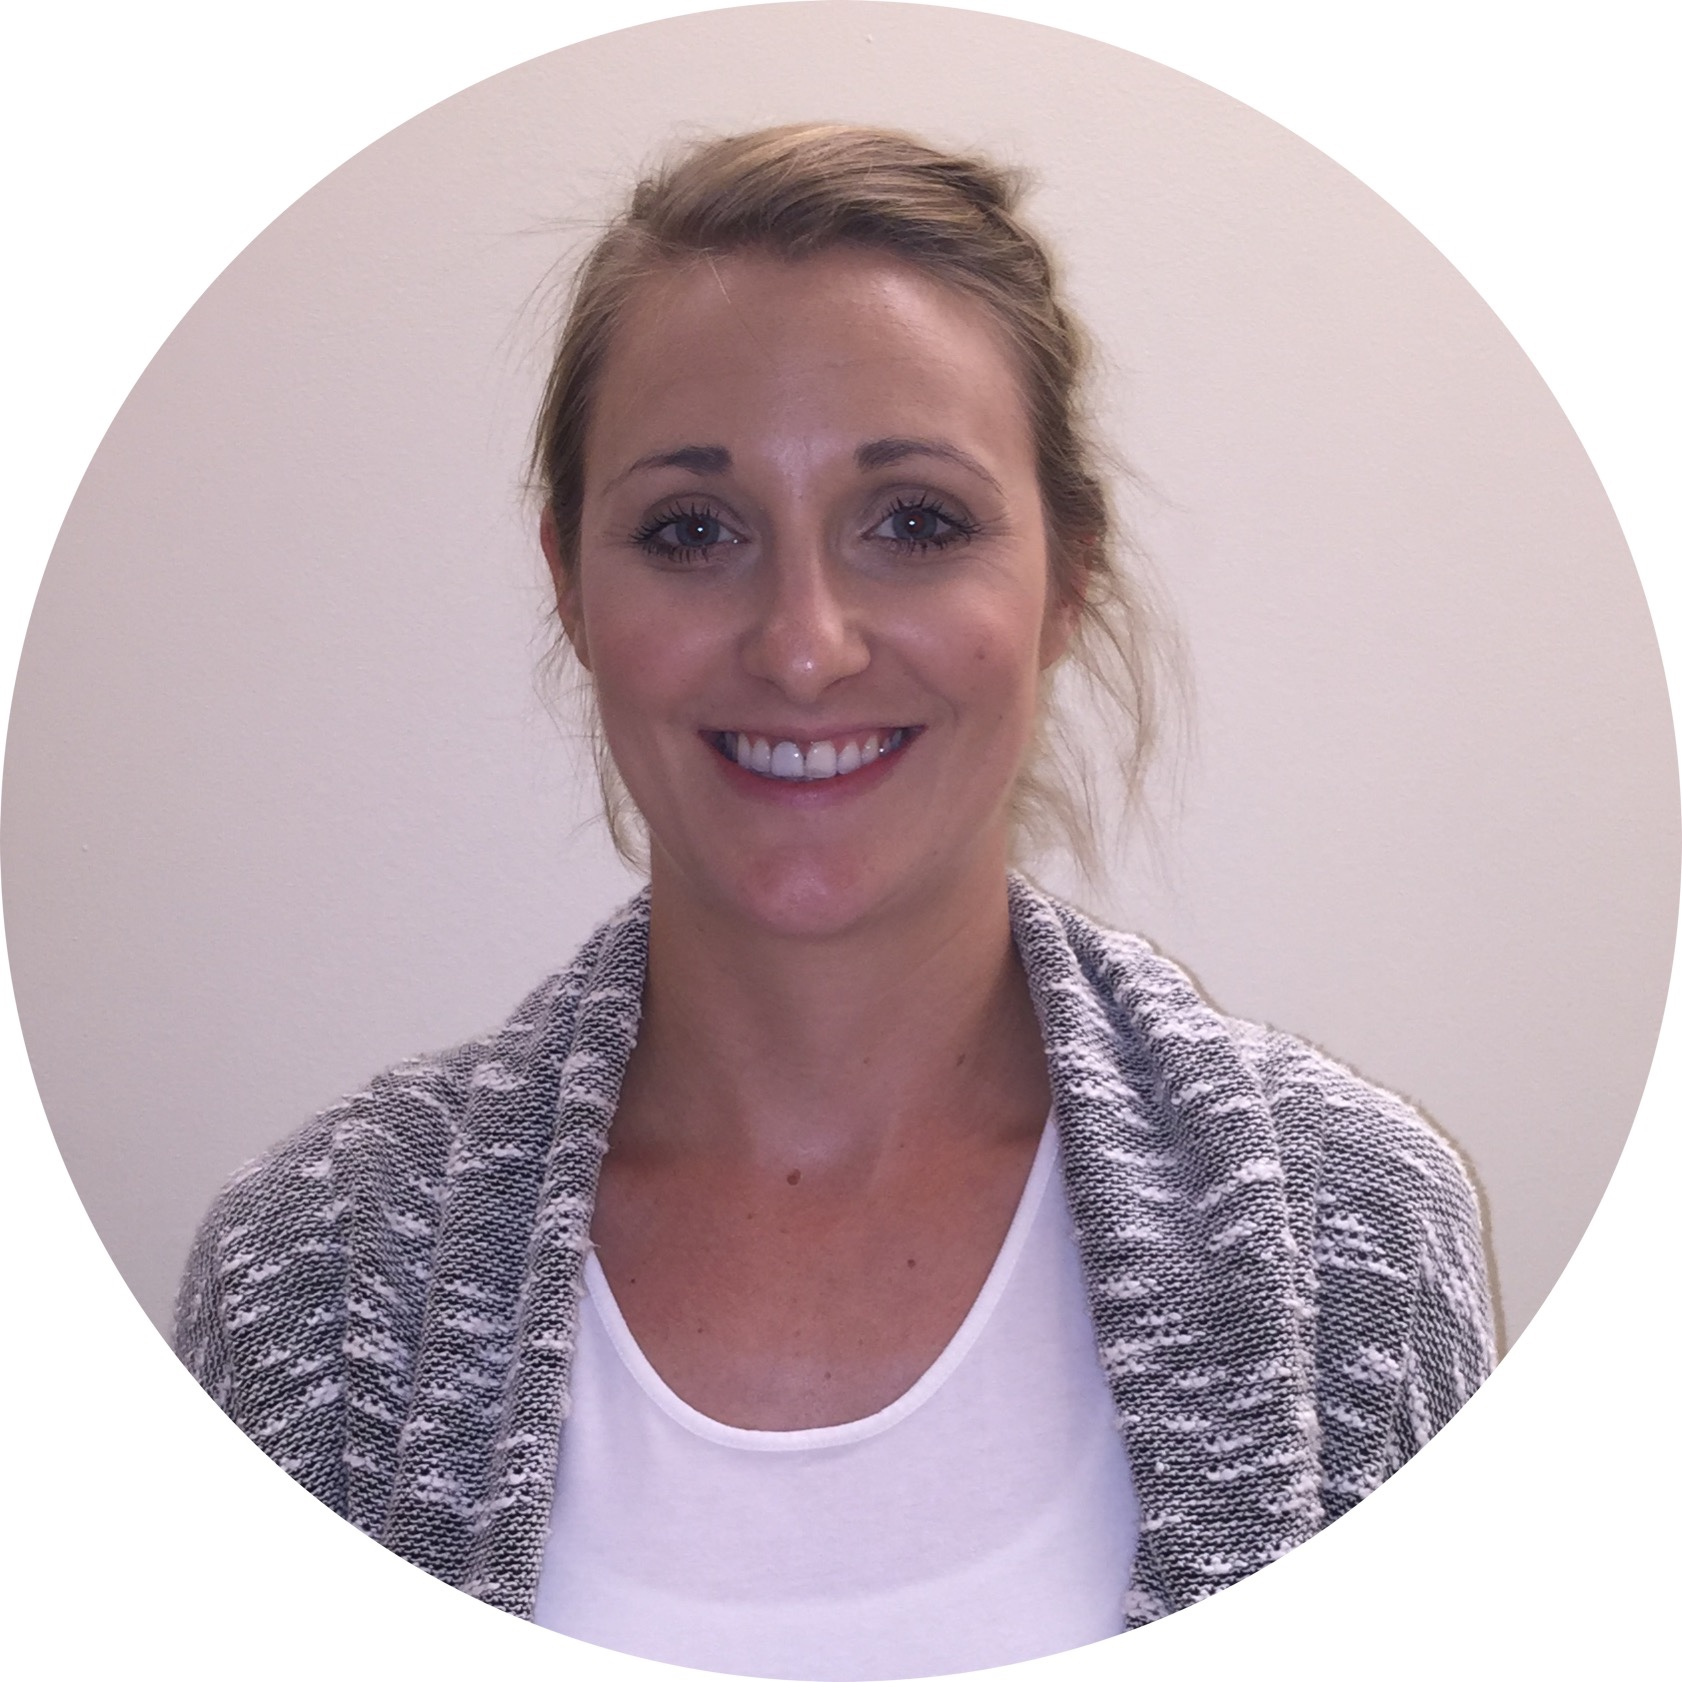 Caity Stetner, LMSW - 718.643.5300 ext 323cstetner@leaguecenter.orgCaity joined JFTN as a treatment coordinator and behavioral support specialist in August 2018. She received her master's in social work in 2017 from New York University where she studied clinical practice with children and families. Caity has previous experience in a number of social service settings including mental health organizations, transitional housing, public schools and nontraditional school settings. Caity is passionate about supporting families in discovering their own resilience through life's many challenges. Her favorite book is The Invisible String by Patrice Karst because it reminds us that we are all connected.